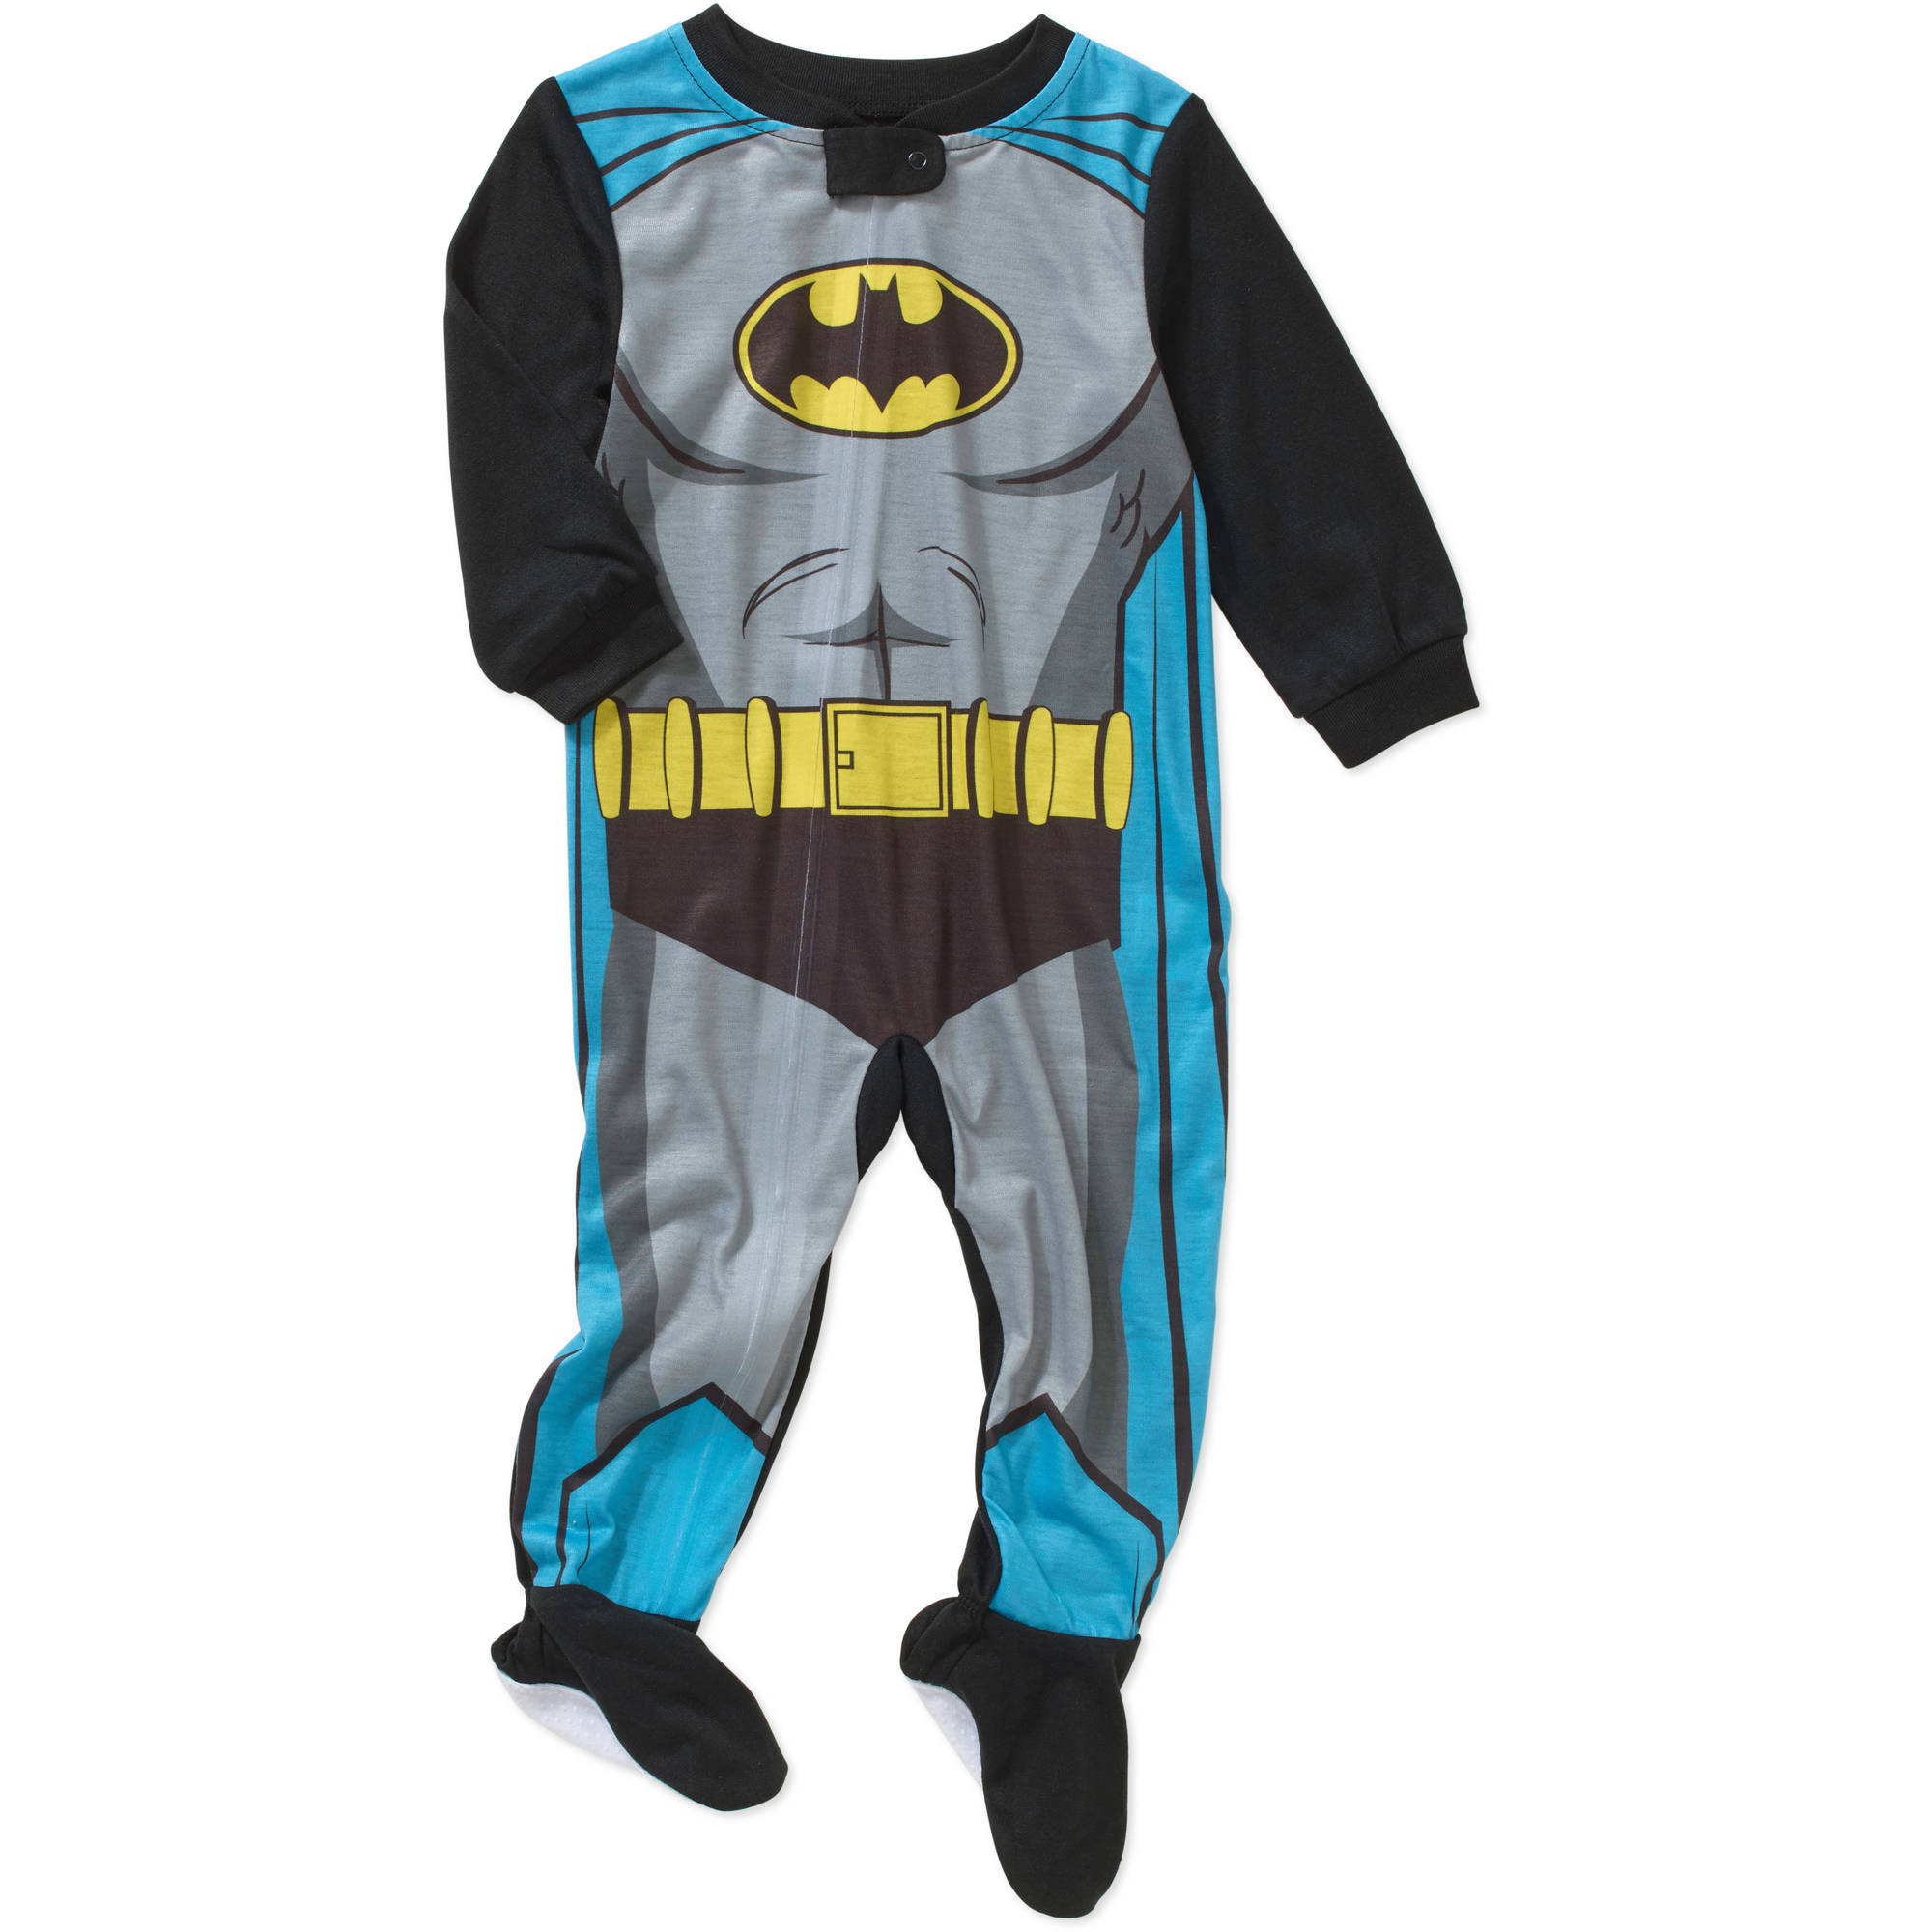 Batman Newborn Infant Baby Boy Footed Blanket Sleeper